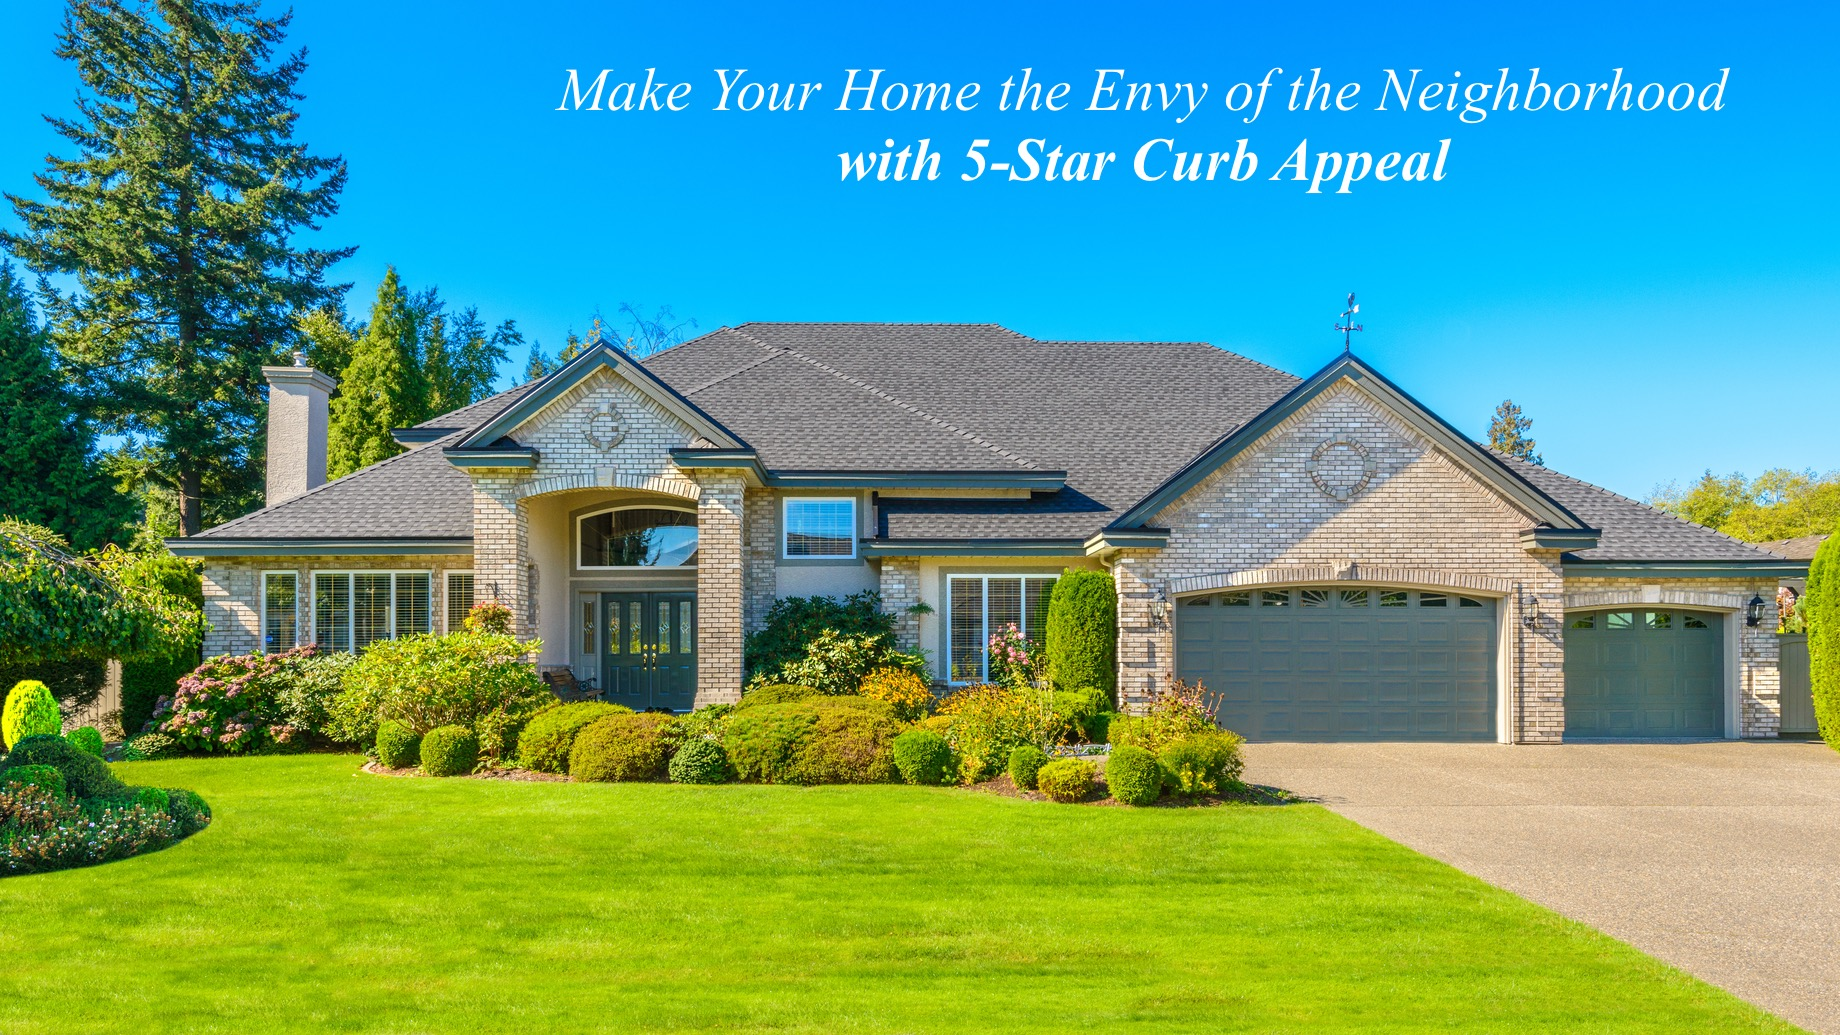 Make Your Home the Envy of the Neighborhood with 5-Star Curb Appeal